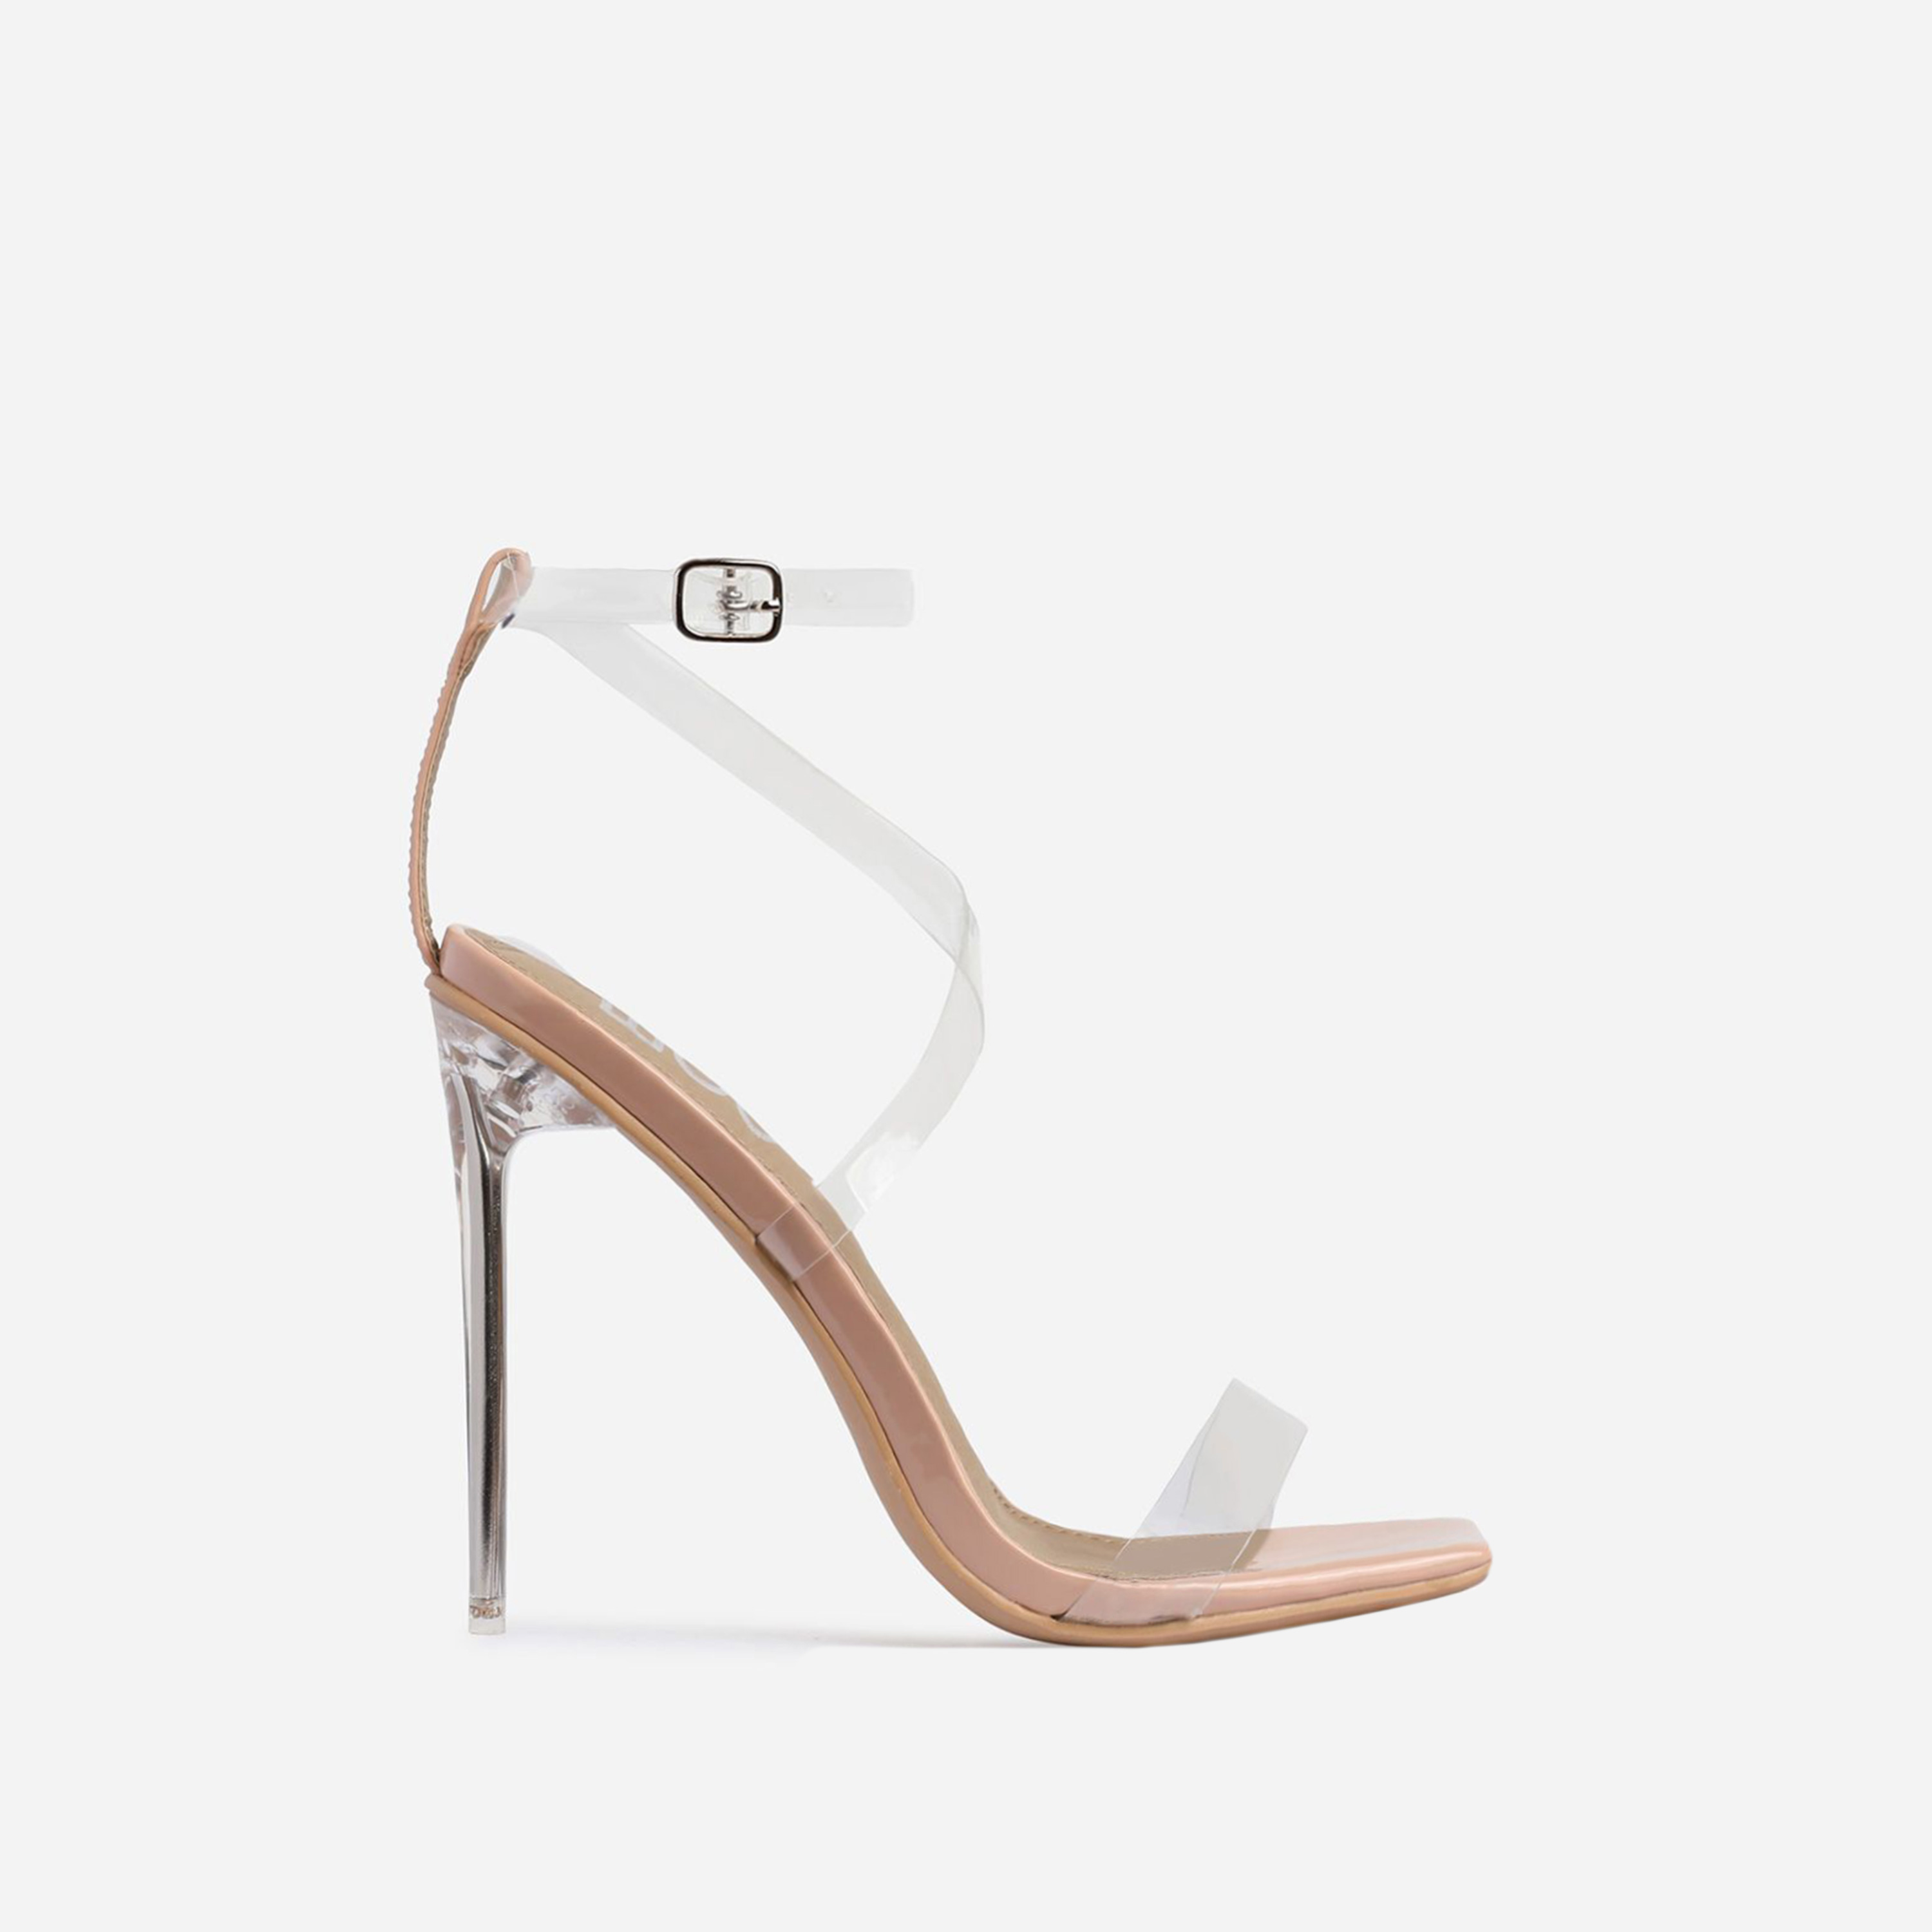 Lance Square Toe Barely There Perspex Heel In Nude Patent